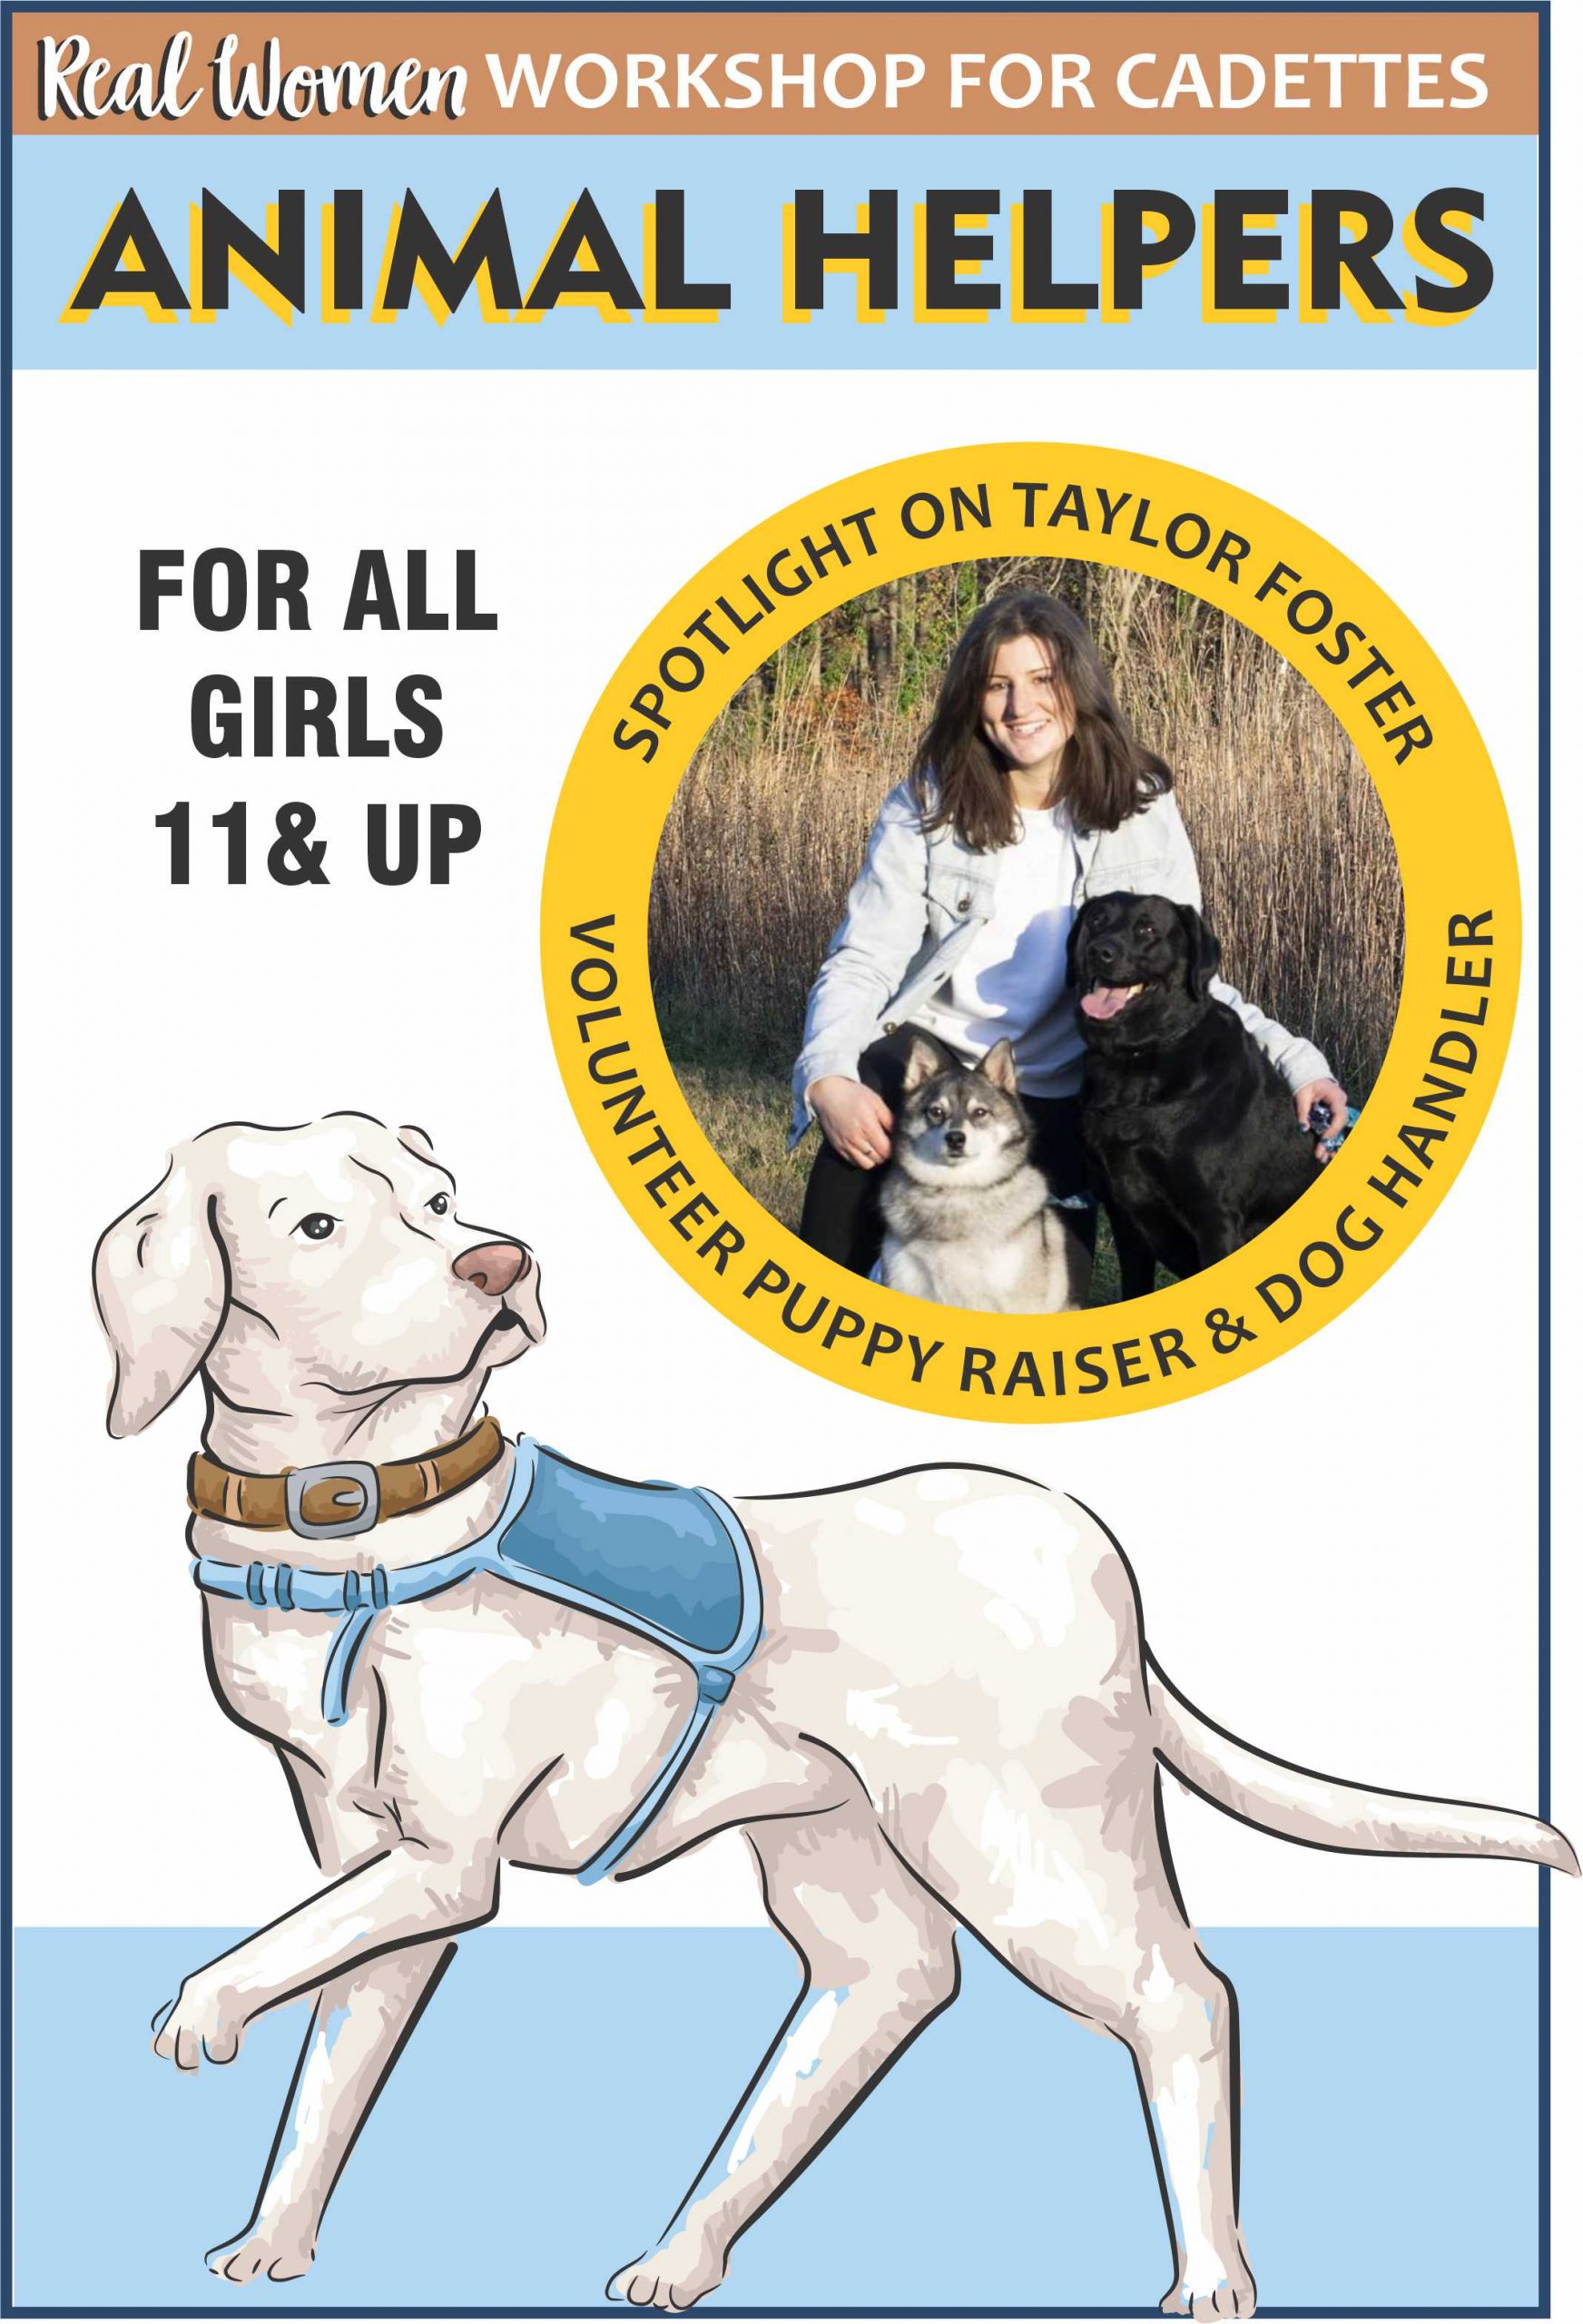 Cadettes find out what it takes for a dog to become an animal helper as part of our Real Women workshop series! #makingfriends #animalhelpers #realwomen #virtualworkshop #girlscouts #gs #virtualgirlscouts #dogs via @gsleader411